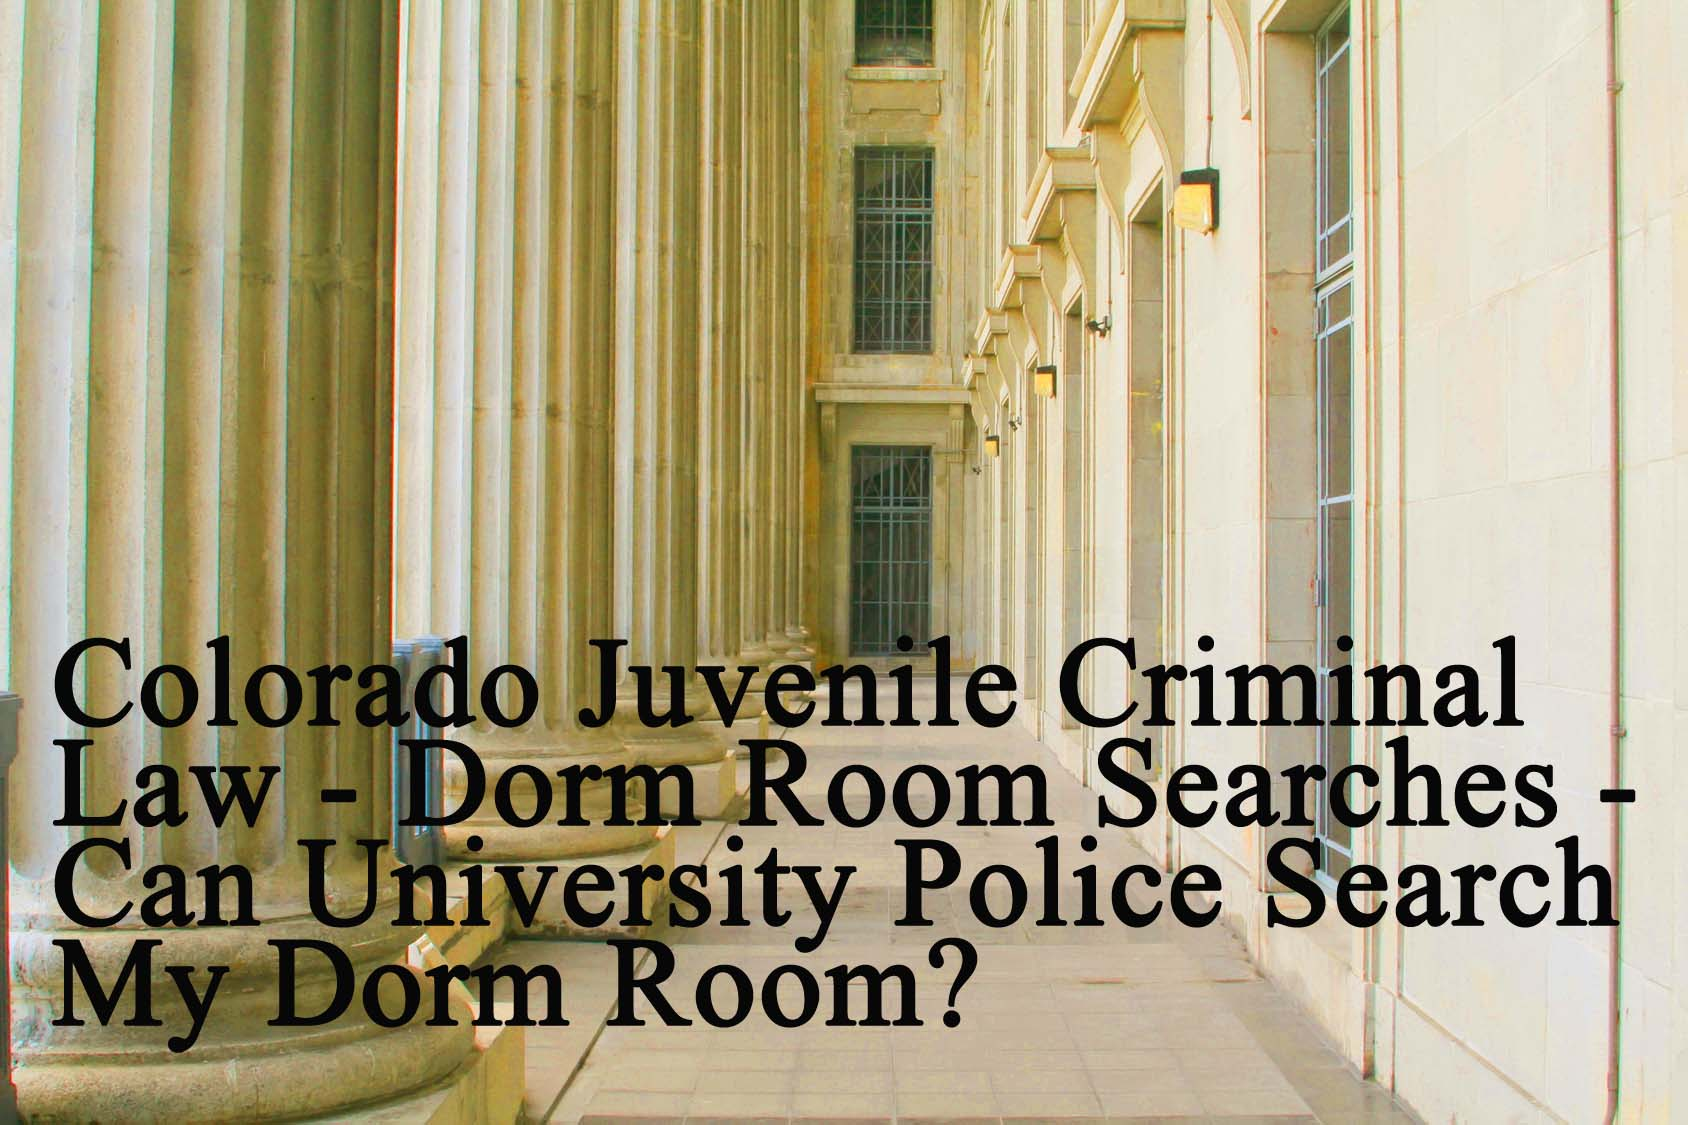 Colorado Juvenile Criminal Law - Dorm Room Searches - Can University Police Search My Dorm Room?